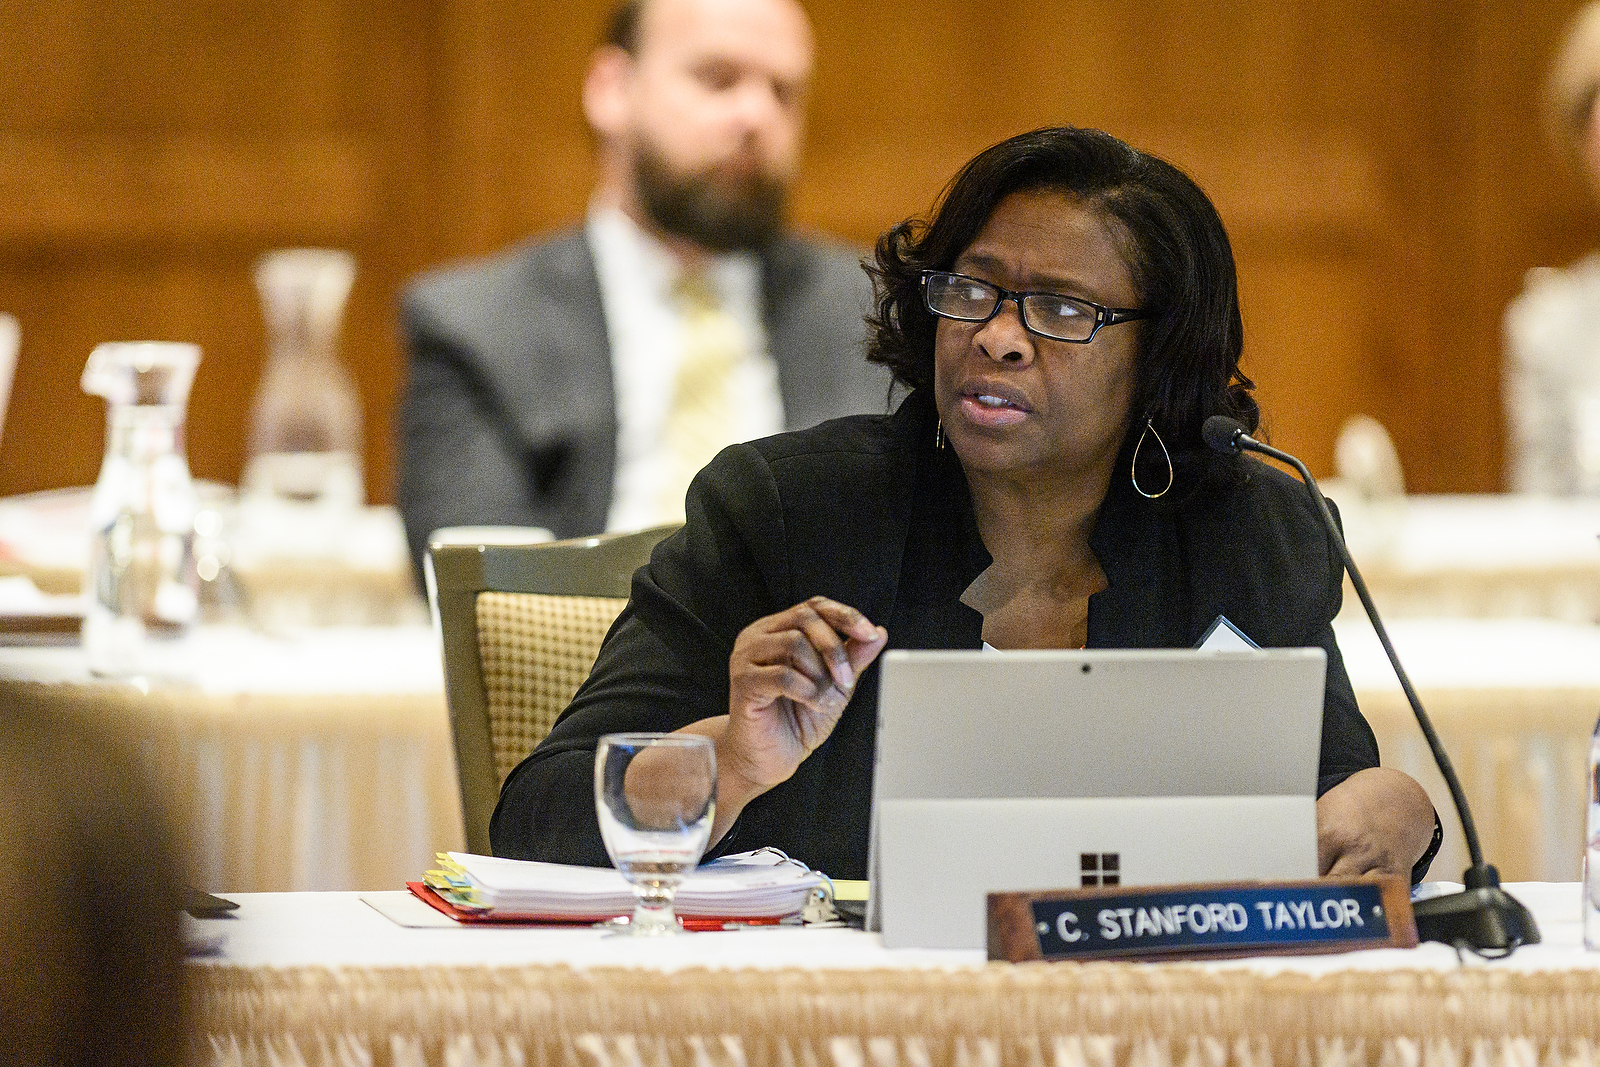 UW System Regent Carolyn Stanford Taylor speaks at the UW System Board of Regents meeting hosted at Union South at the University of Wisconsin-Madison on Feb. 7, 2019. (Photo by Bryce Richter /UW-Madison)